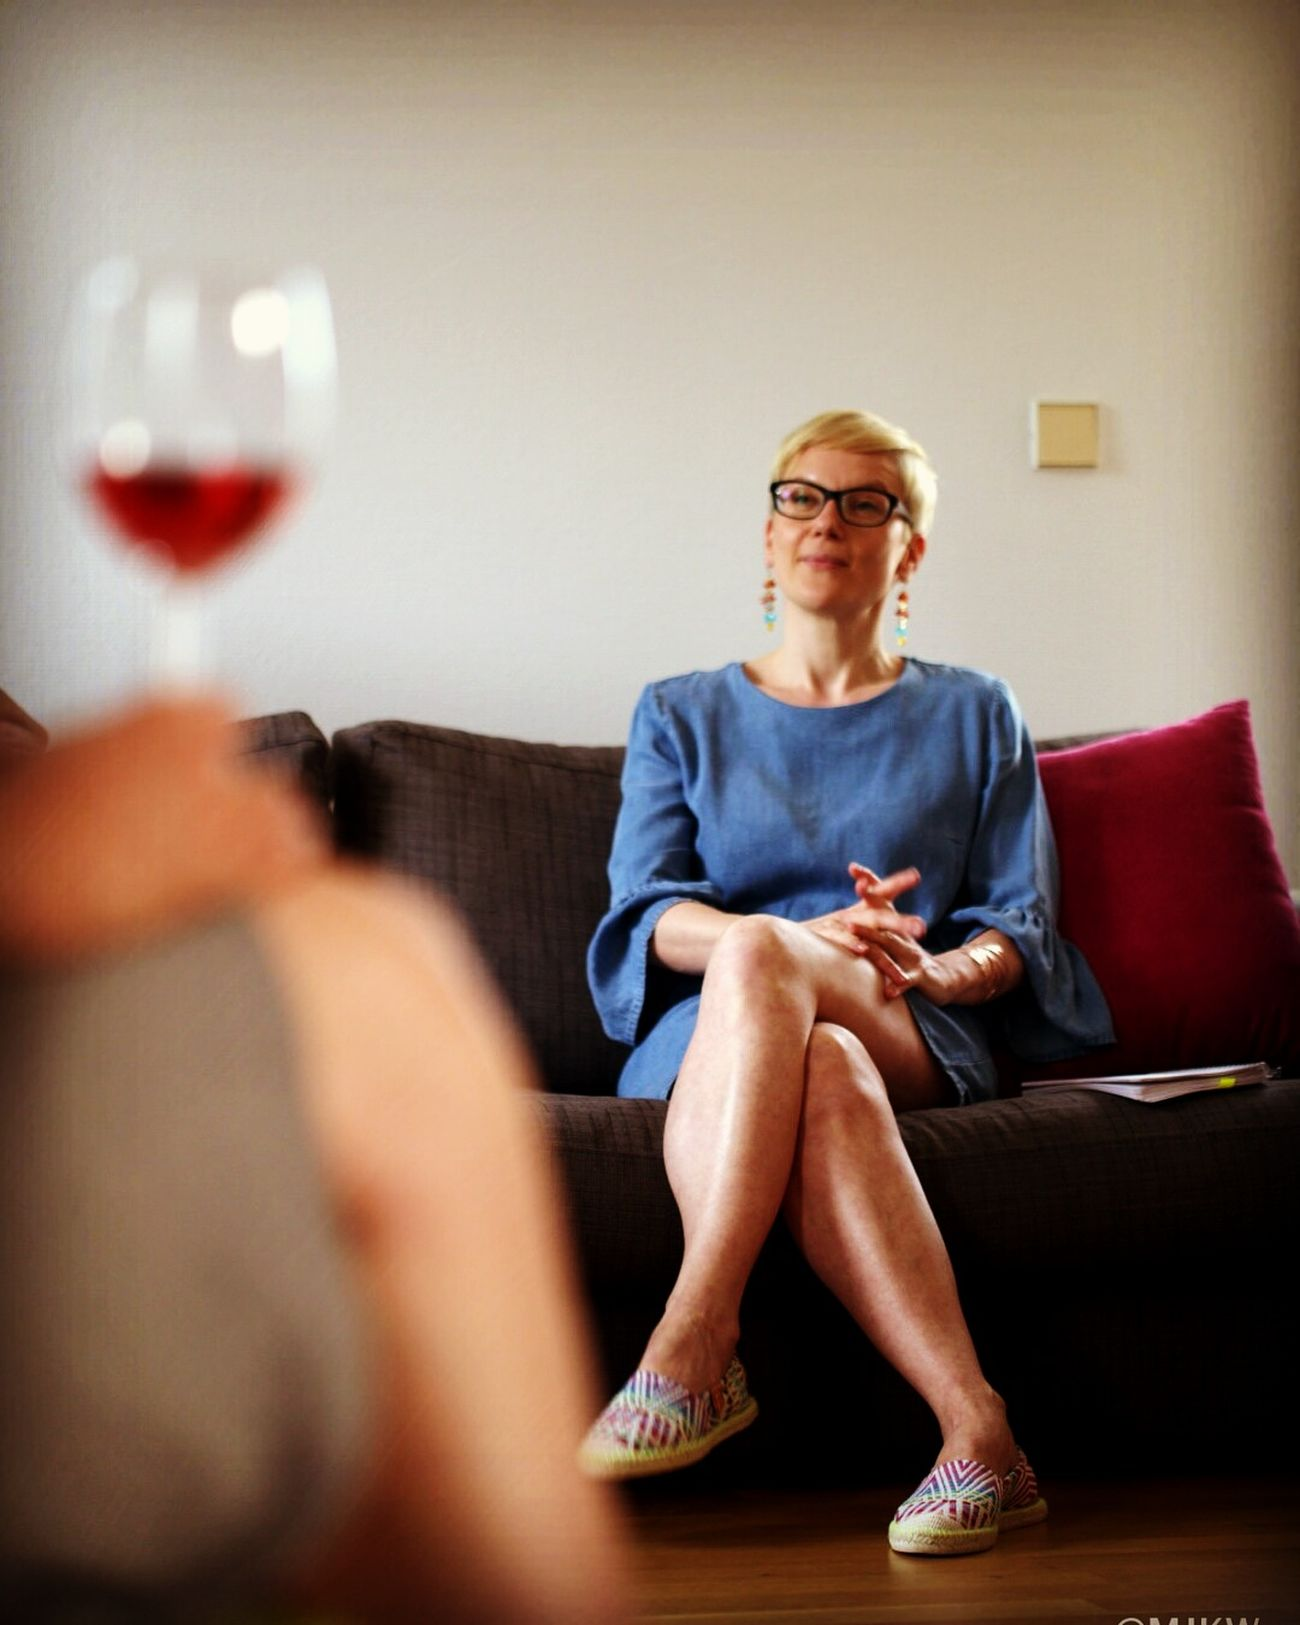 EyeEm Selects Woman Wineglass Sitting Wine Adult Eyeglasses  Indoors  Blonde Red Adults Only Red Wine One Person Lifestyles Full Length Drink Winetasting People